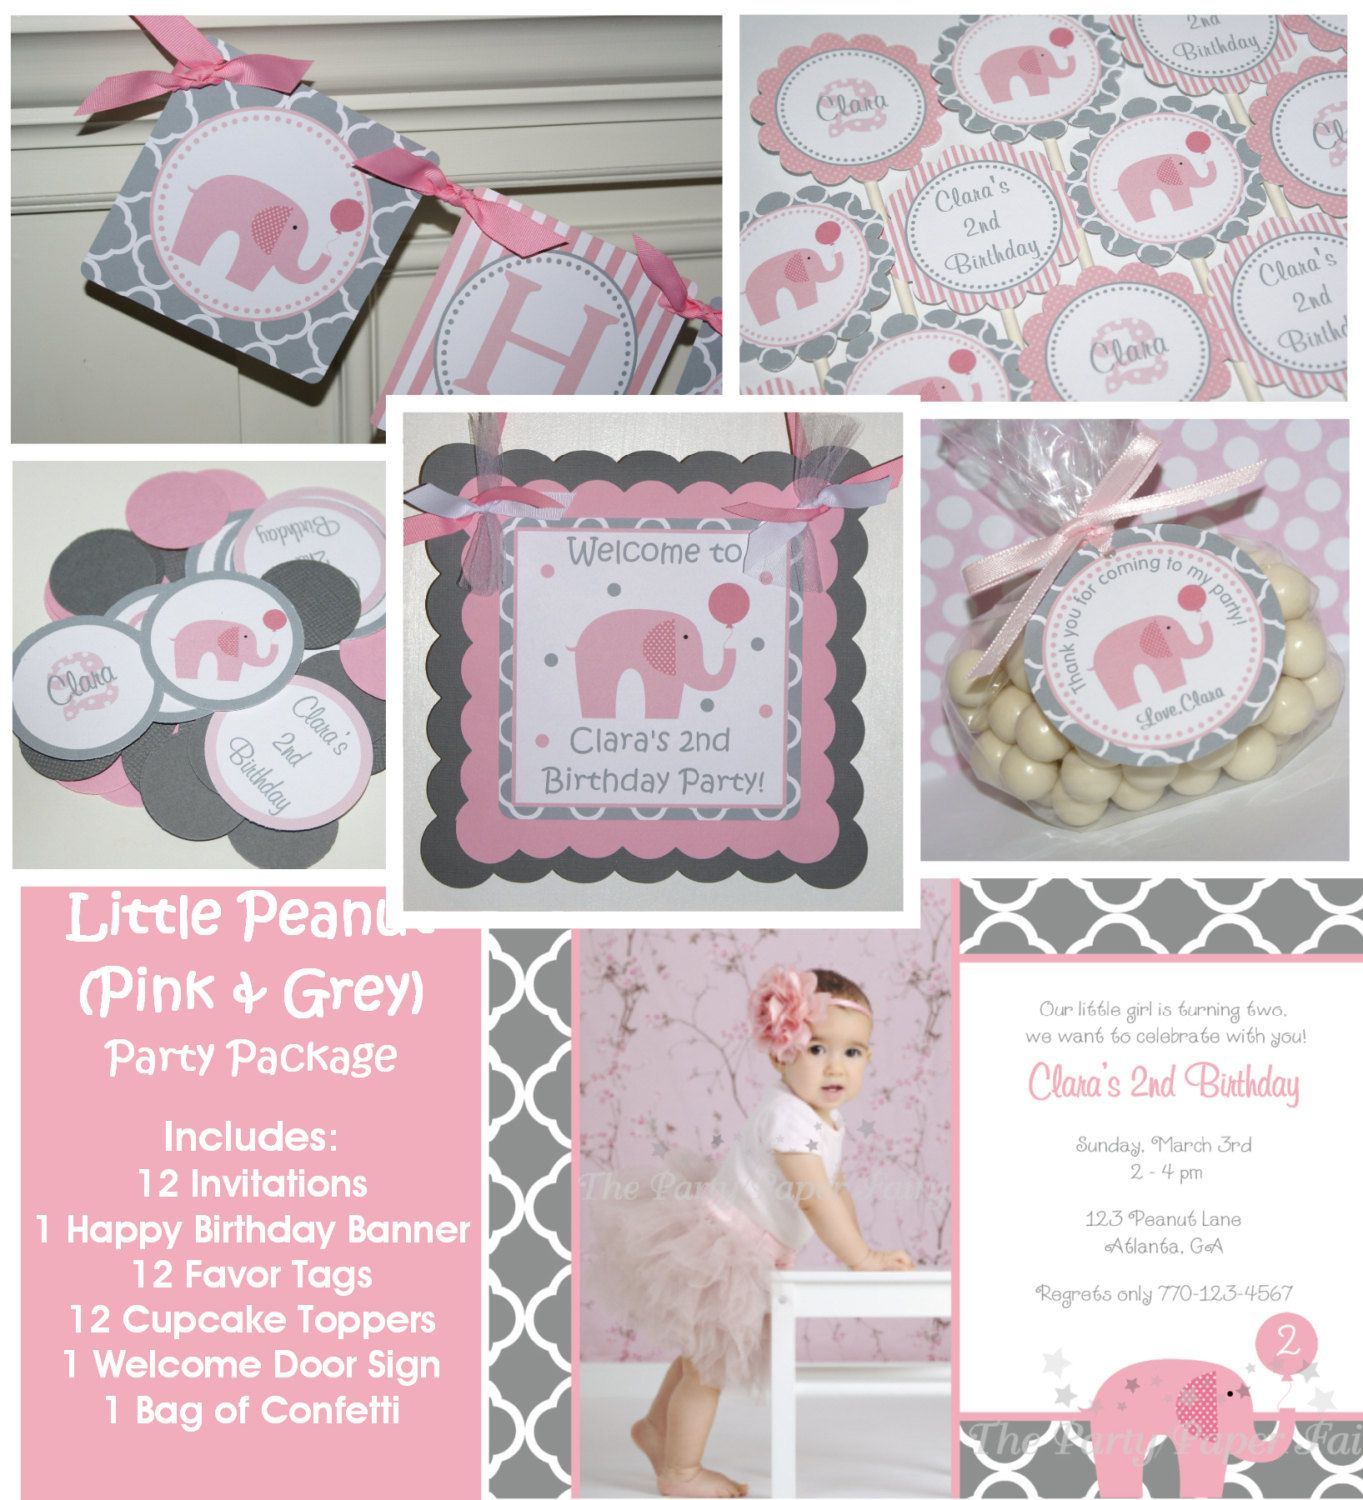 Little Peanut Pink Elephant Birthday Party Package